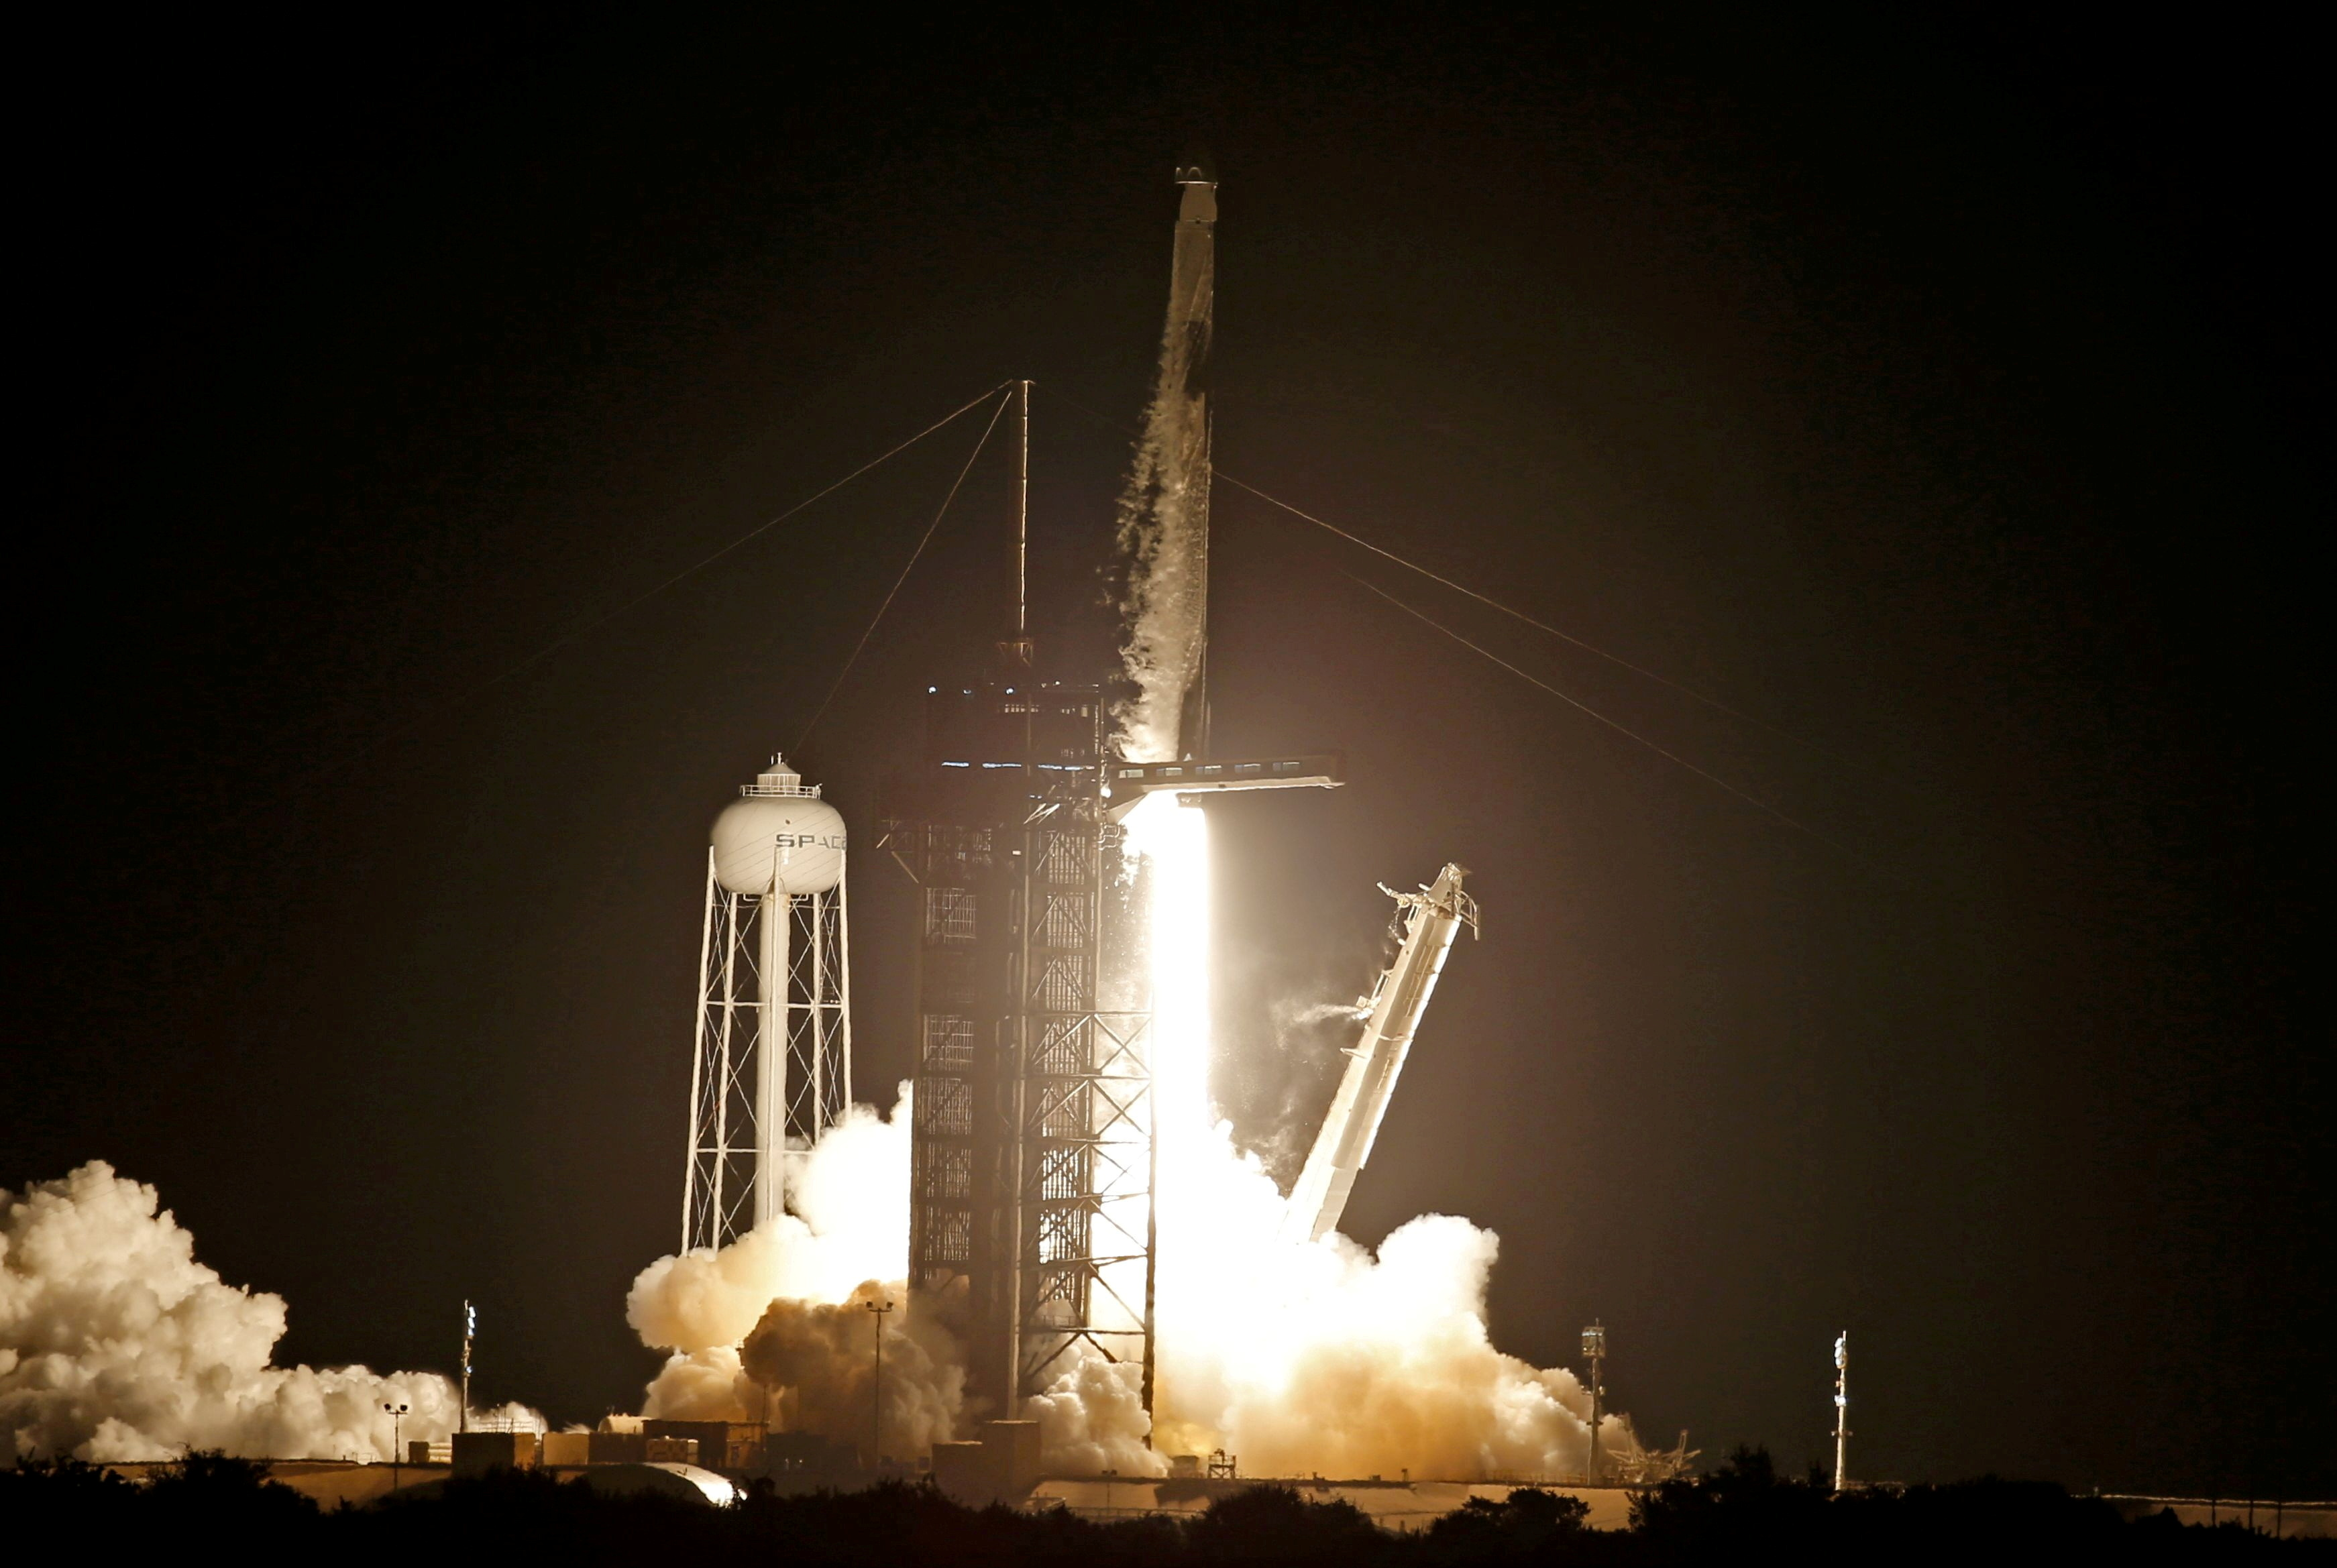 A SpaceX Falcon 9 rocket, with the Crew Dragon capsule, is launched carrying four astronauts on a NASA commercial crew mission at Kennedy Space Center in Cape Canaveral, Florida, September 15, 2021. REUTERS/Thom Baur/File Photo